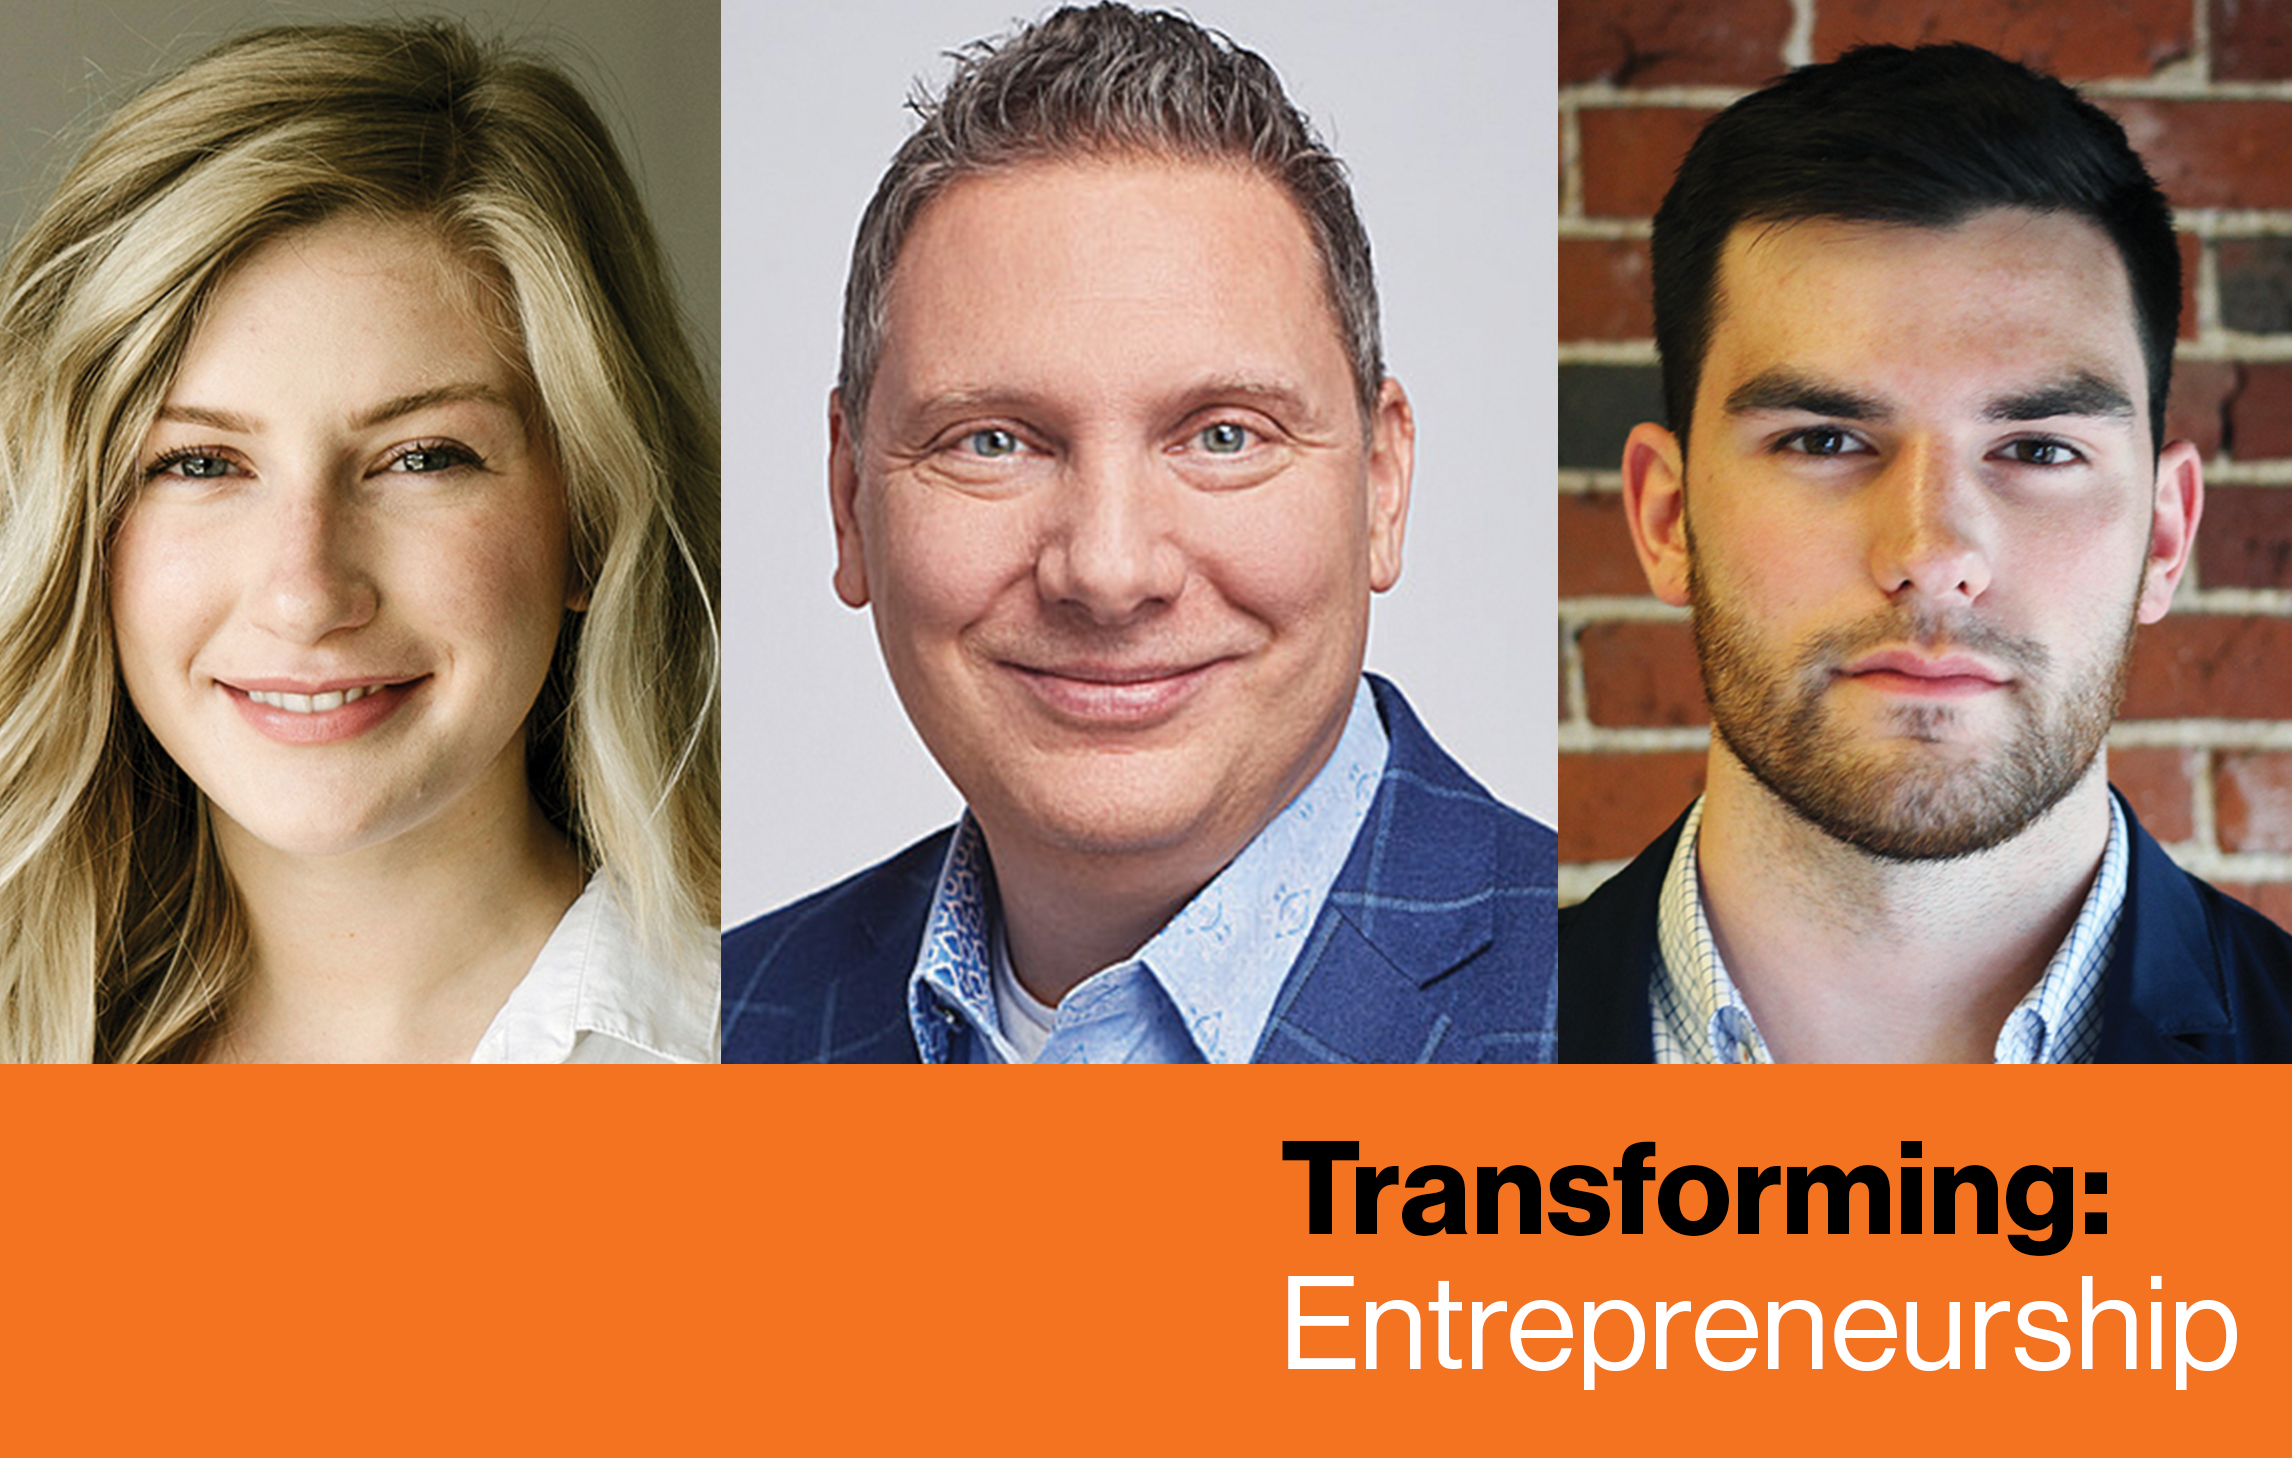 img: Images of Kailey Bradt, Rob Frasca, and Nicholas Lemieux   Text: Transforming Entrepreneurship